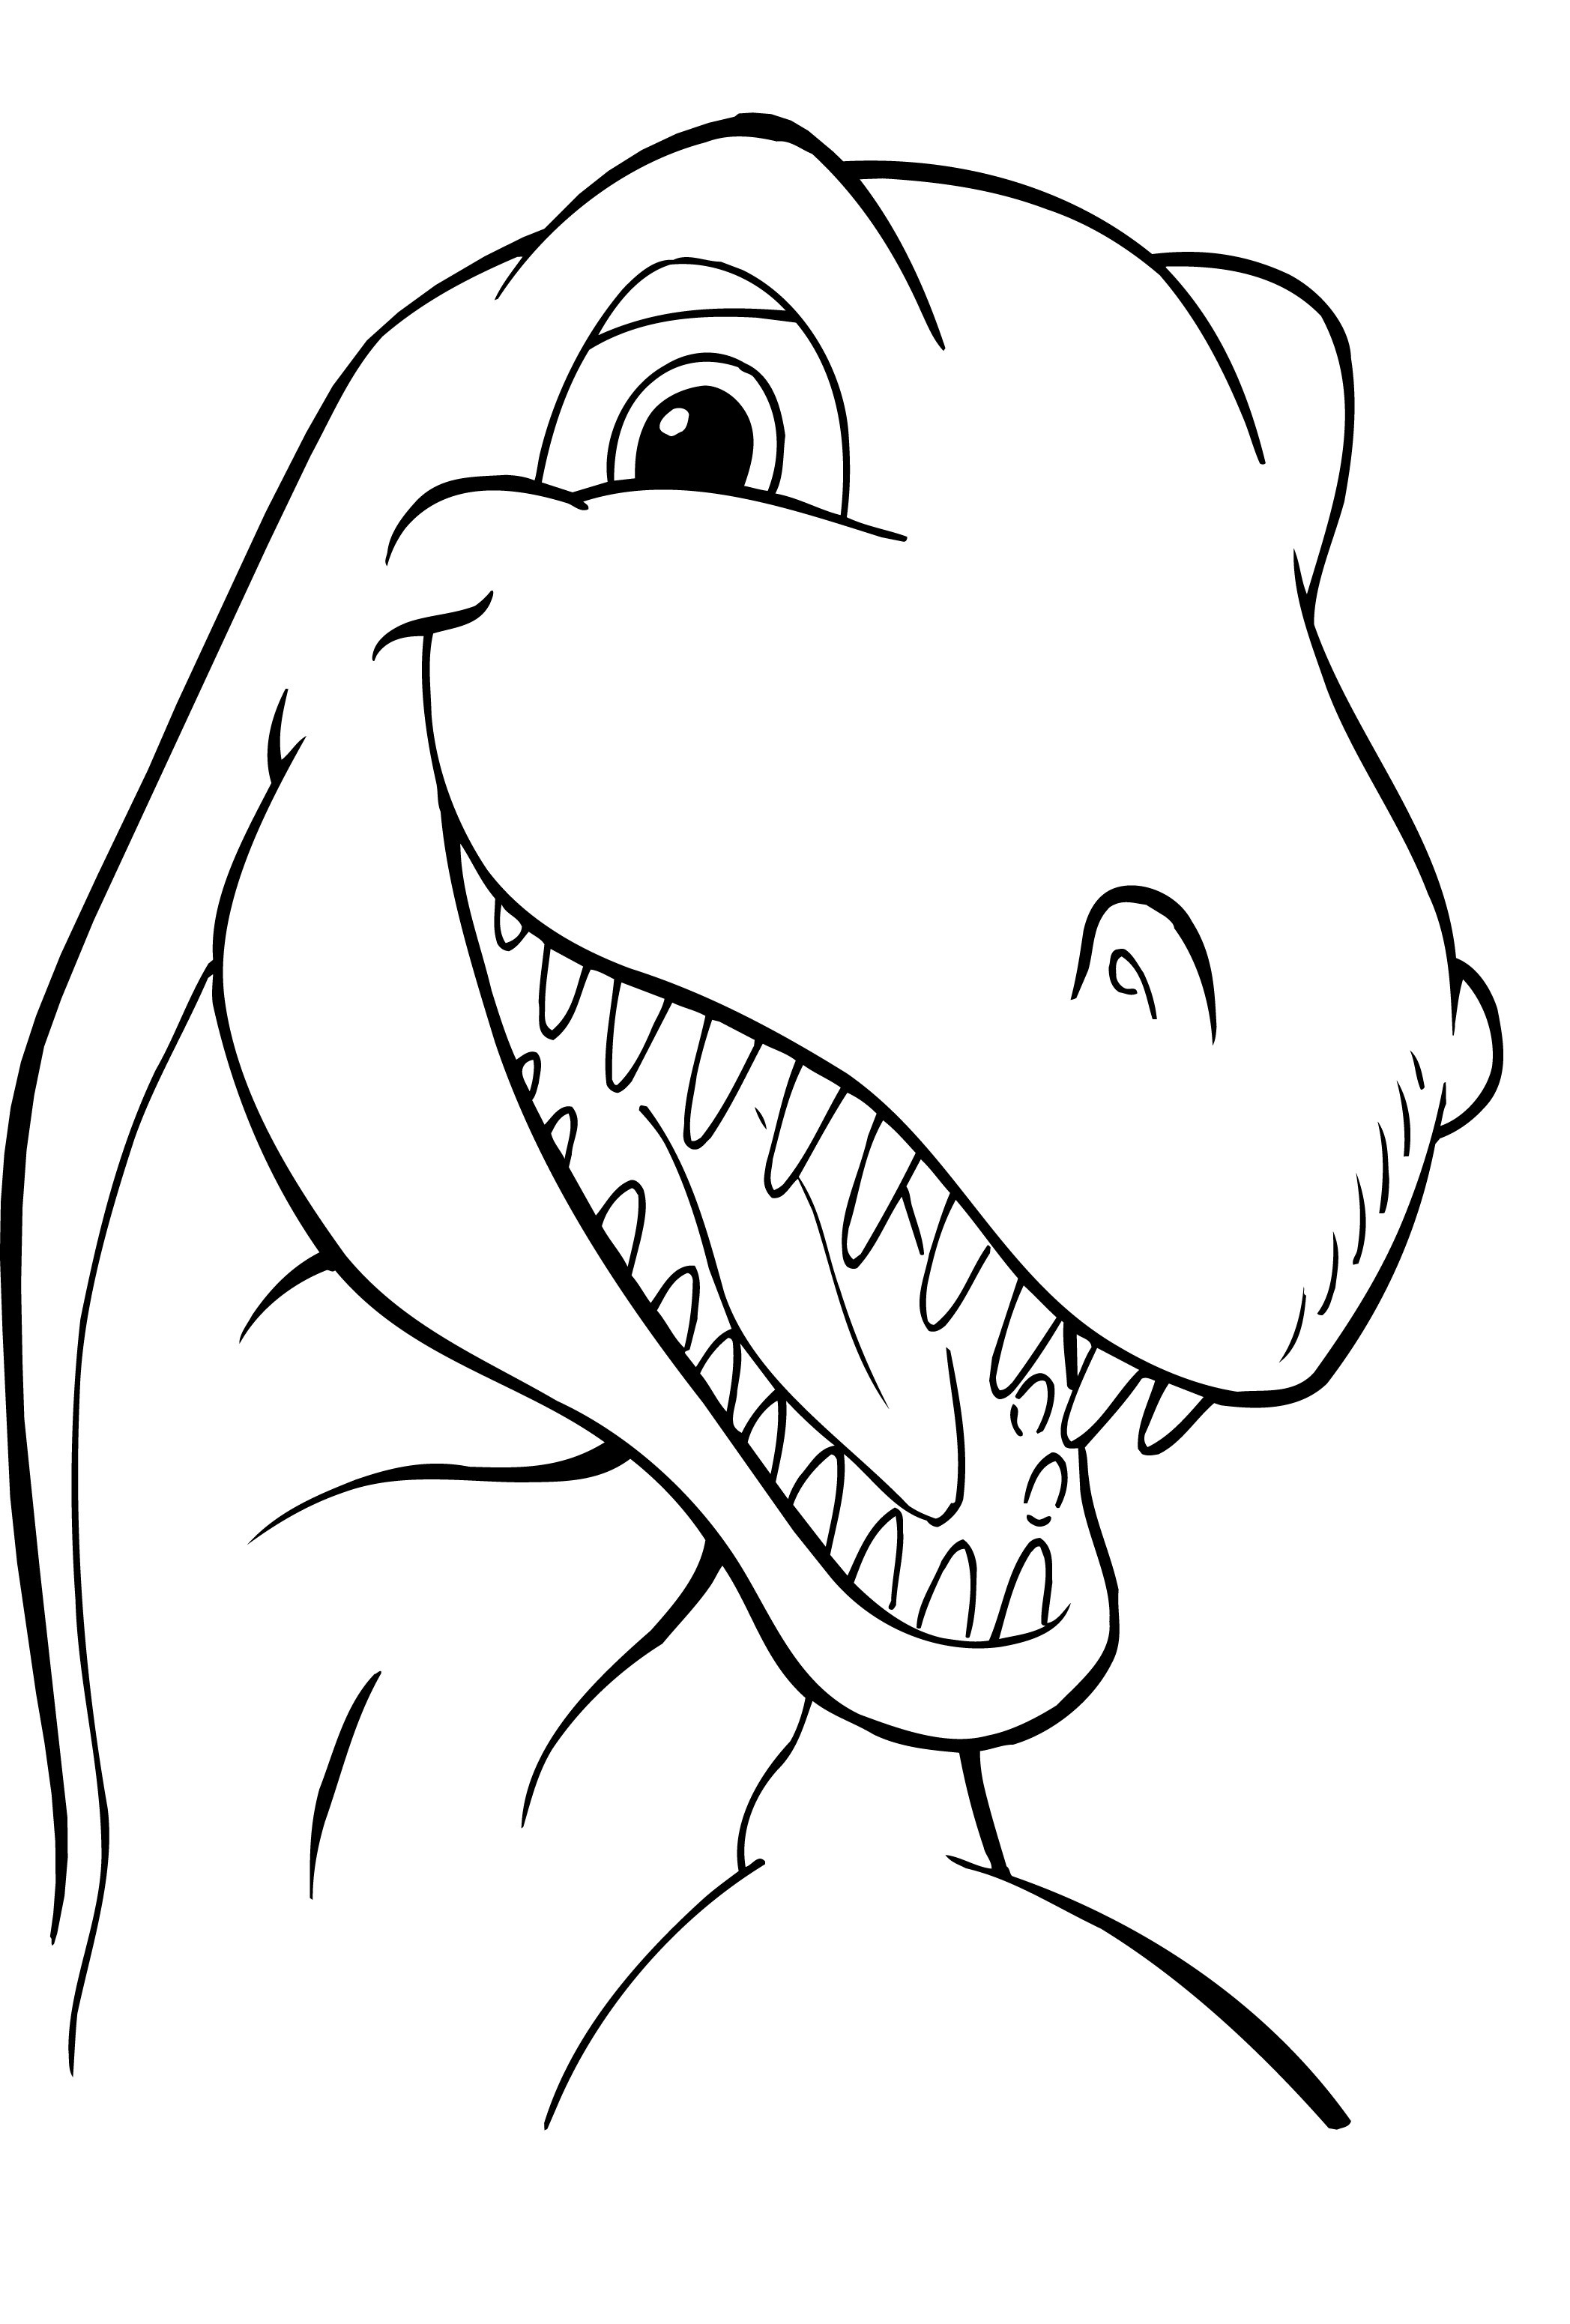 coloring dinosaur free printables dinosaurs coloring pages collection free coloring sheets dinosaur coloring printables free 1 1